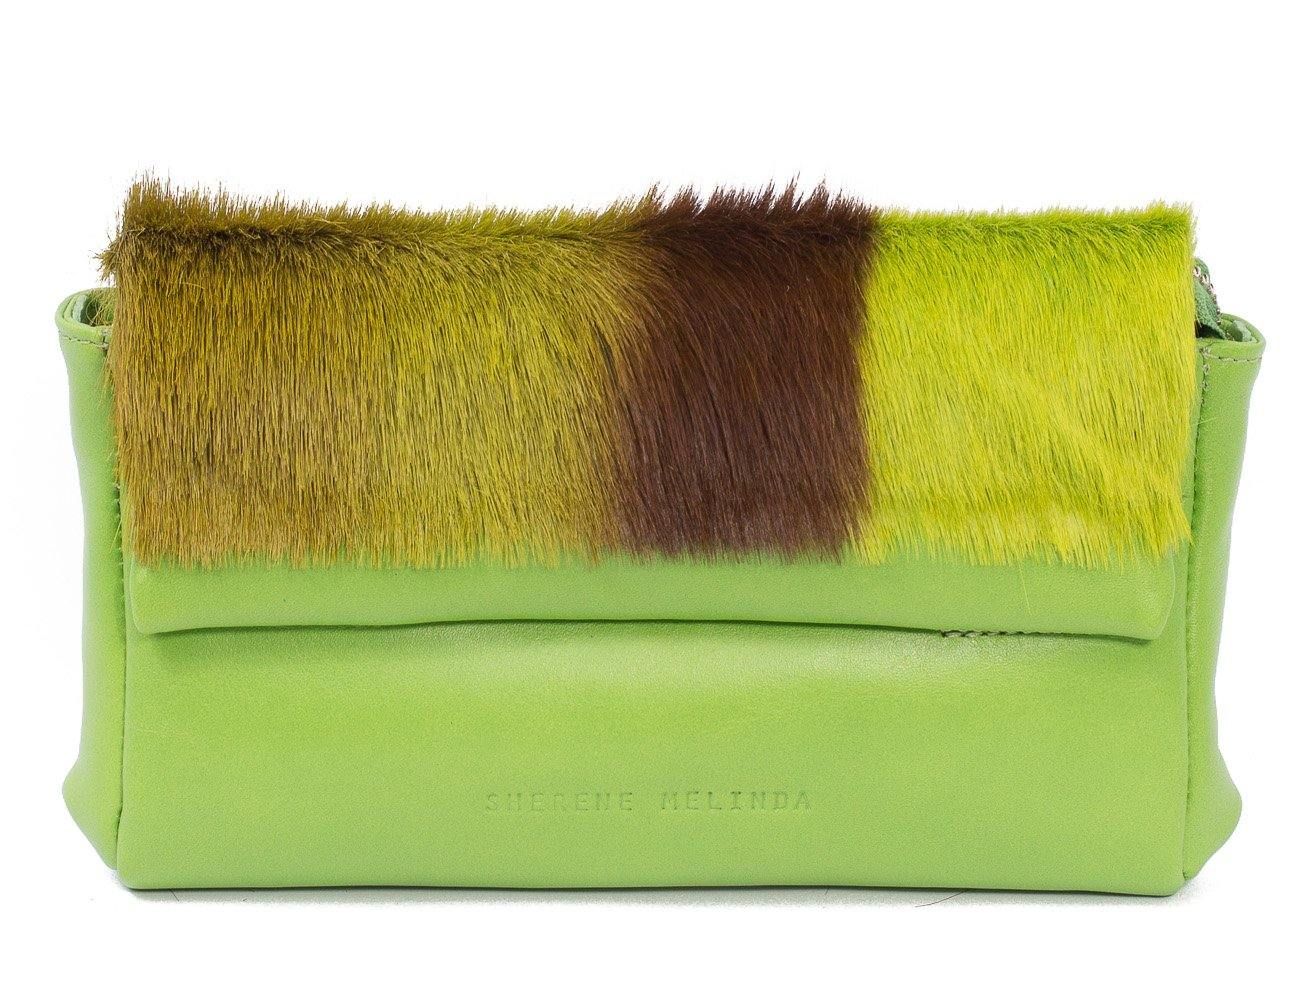 sherene melinda springbok hair-on-hide lime green leather Sophy SS18 Clutch Bag stripe front strap